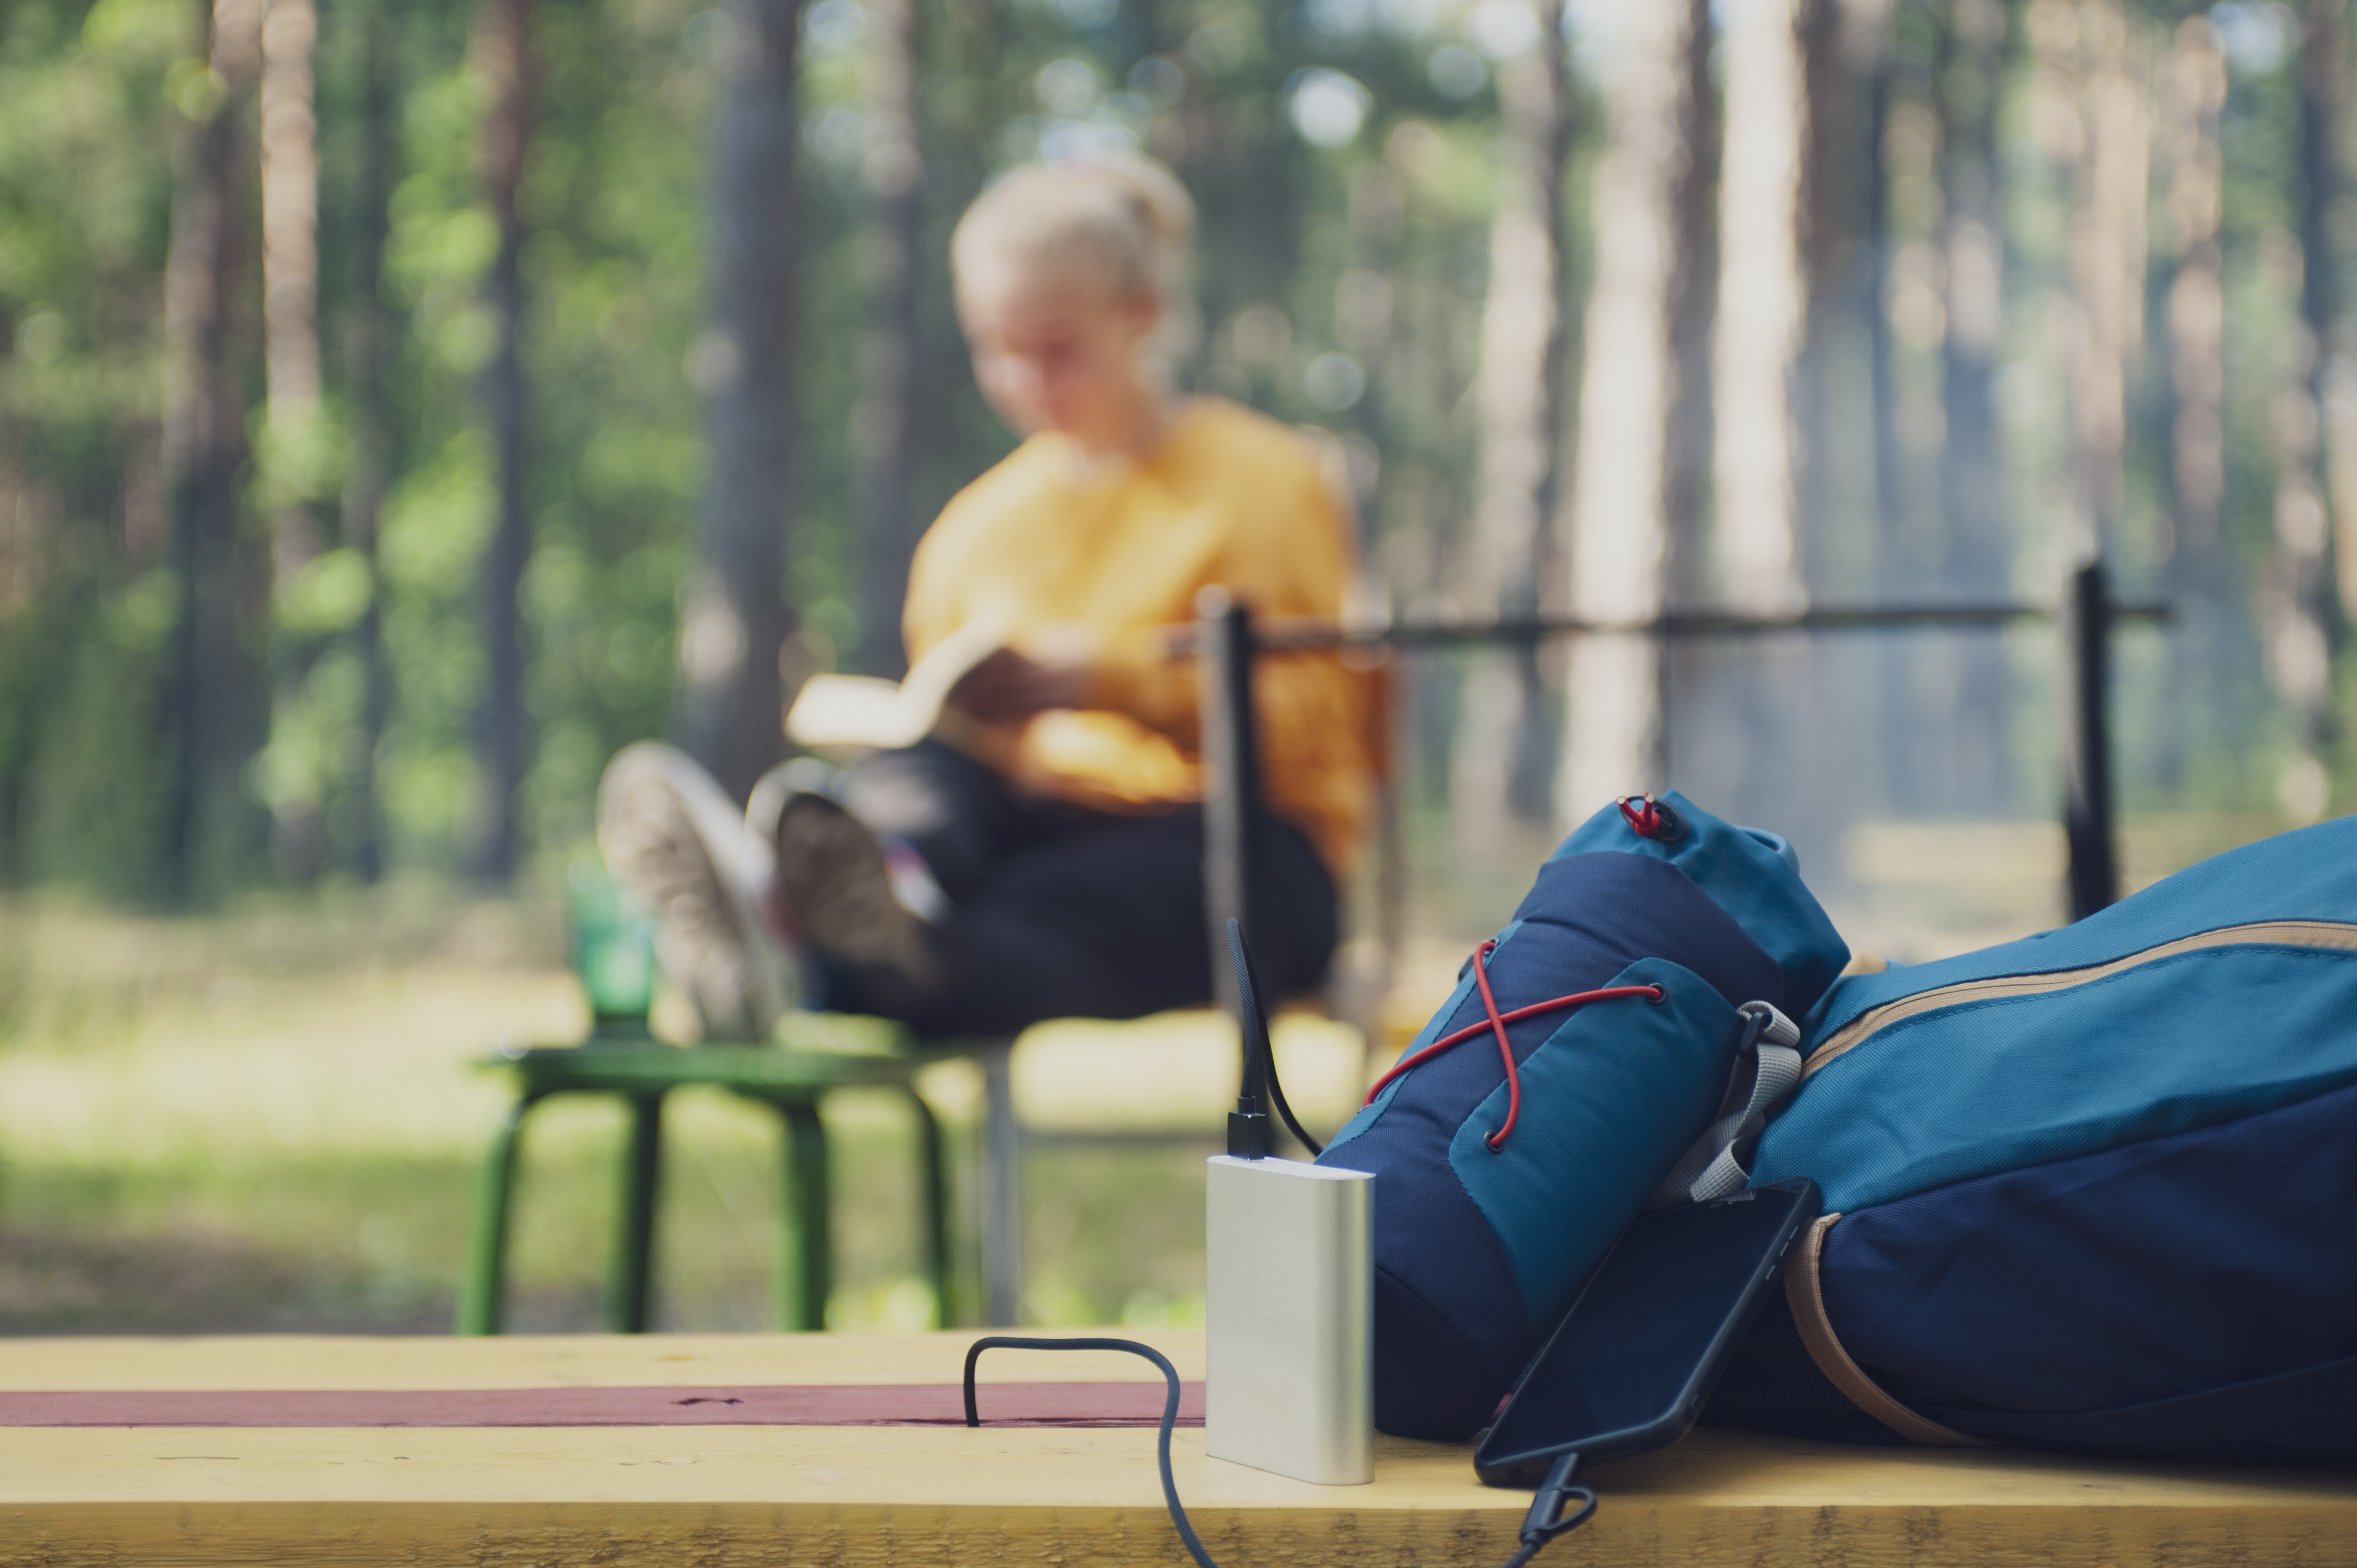 portable-charger-in-camping-girl-tourist-reading-book-in-the-woods-on-the-background-of-backpack-and-bank-turn.jpg